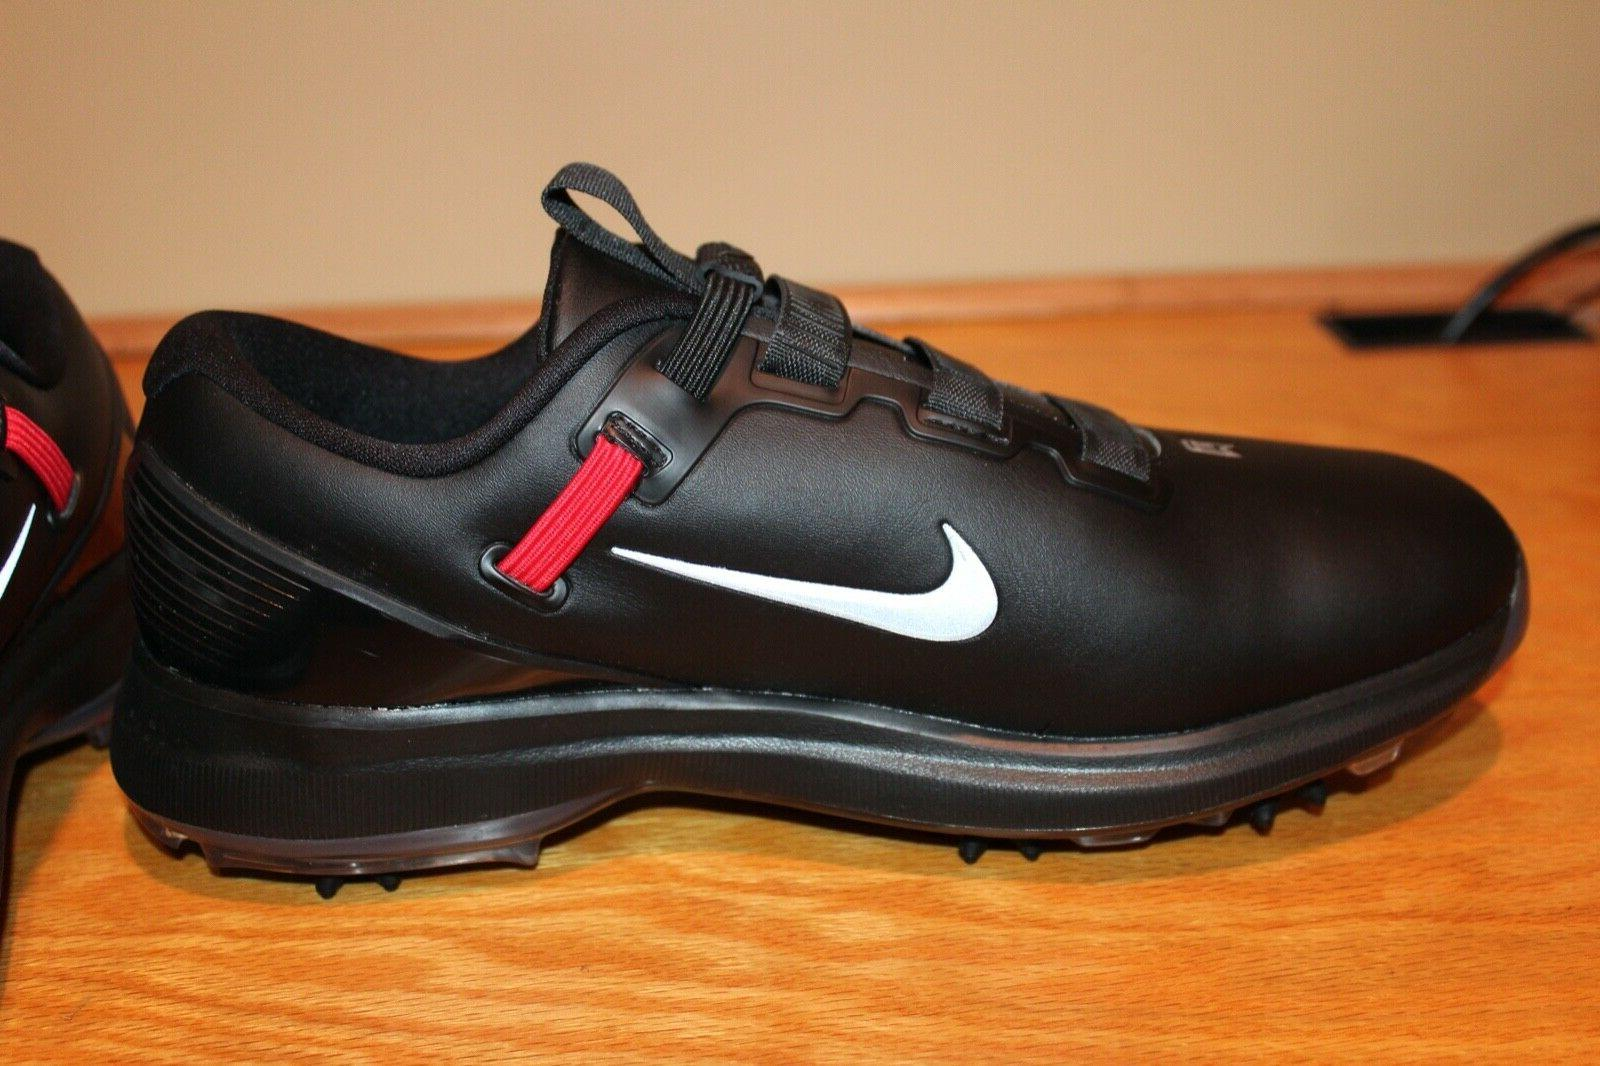 Nike Tiger Fast Shoes